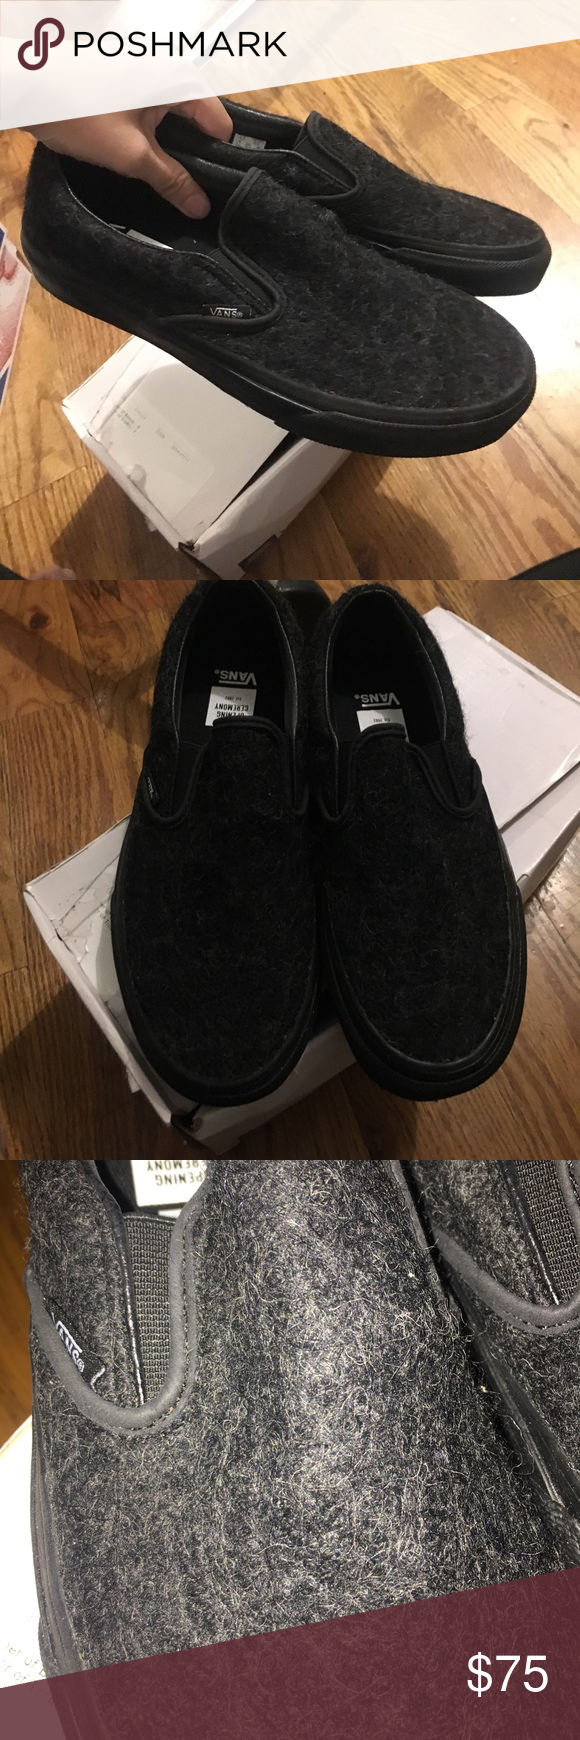 9140a09fce6e3d Opening Ceremony X Vans Classic Slip ons Wool New in box! Classic vans slip  ons. Vans for opening ceremony. Wool exterior. Damage to box.